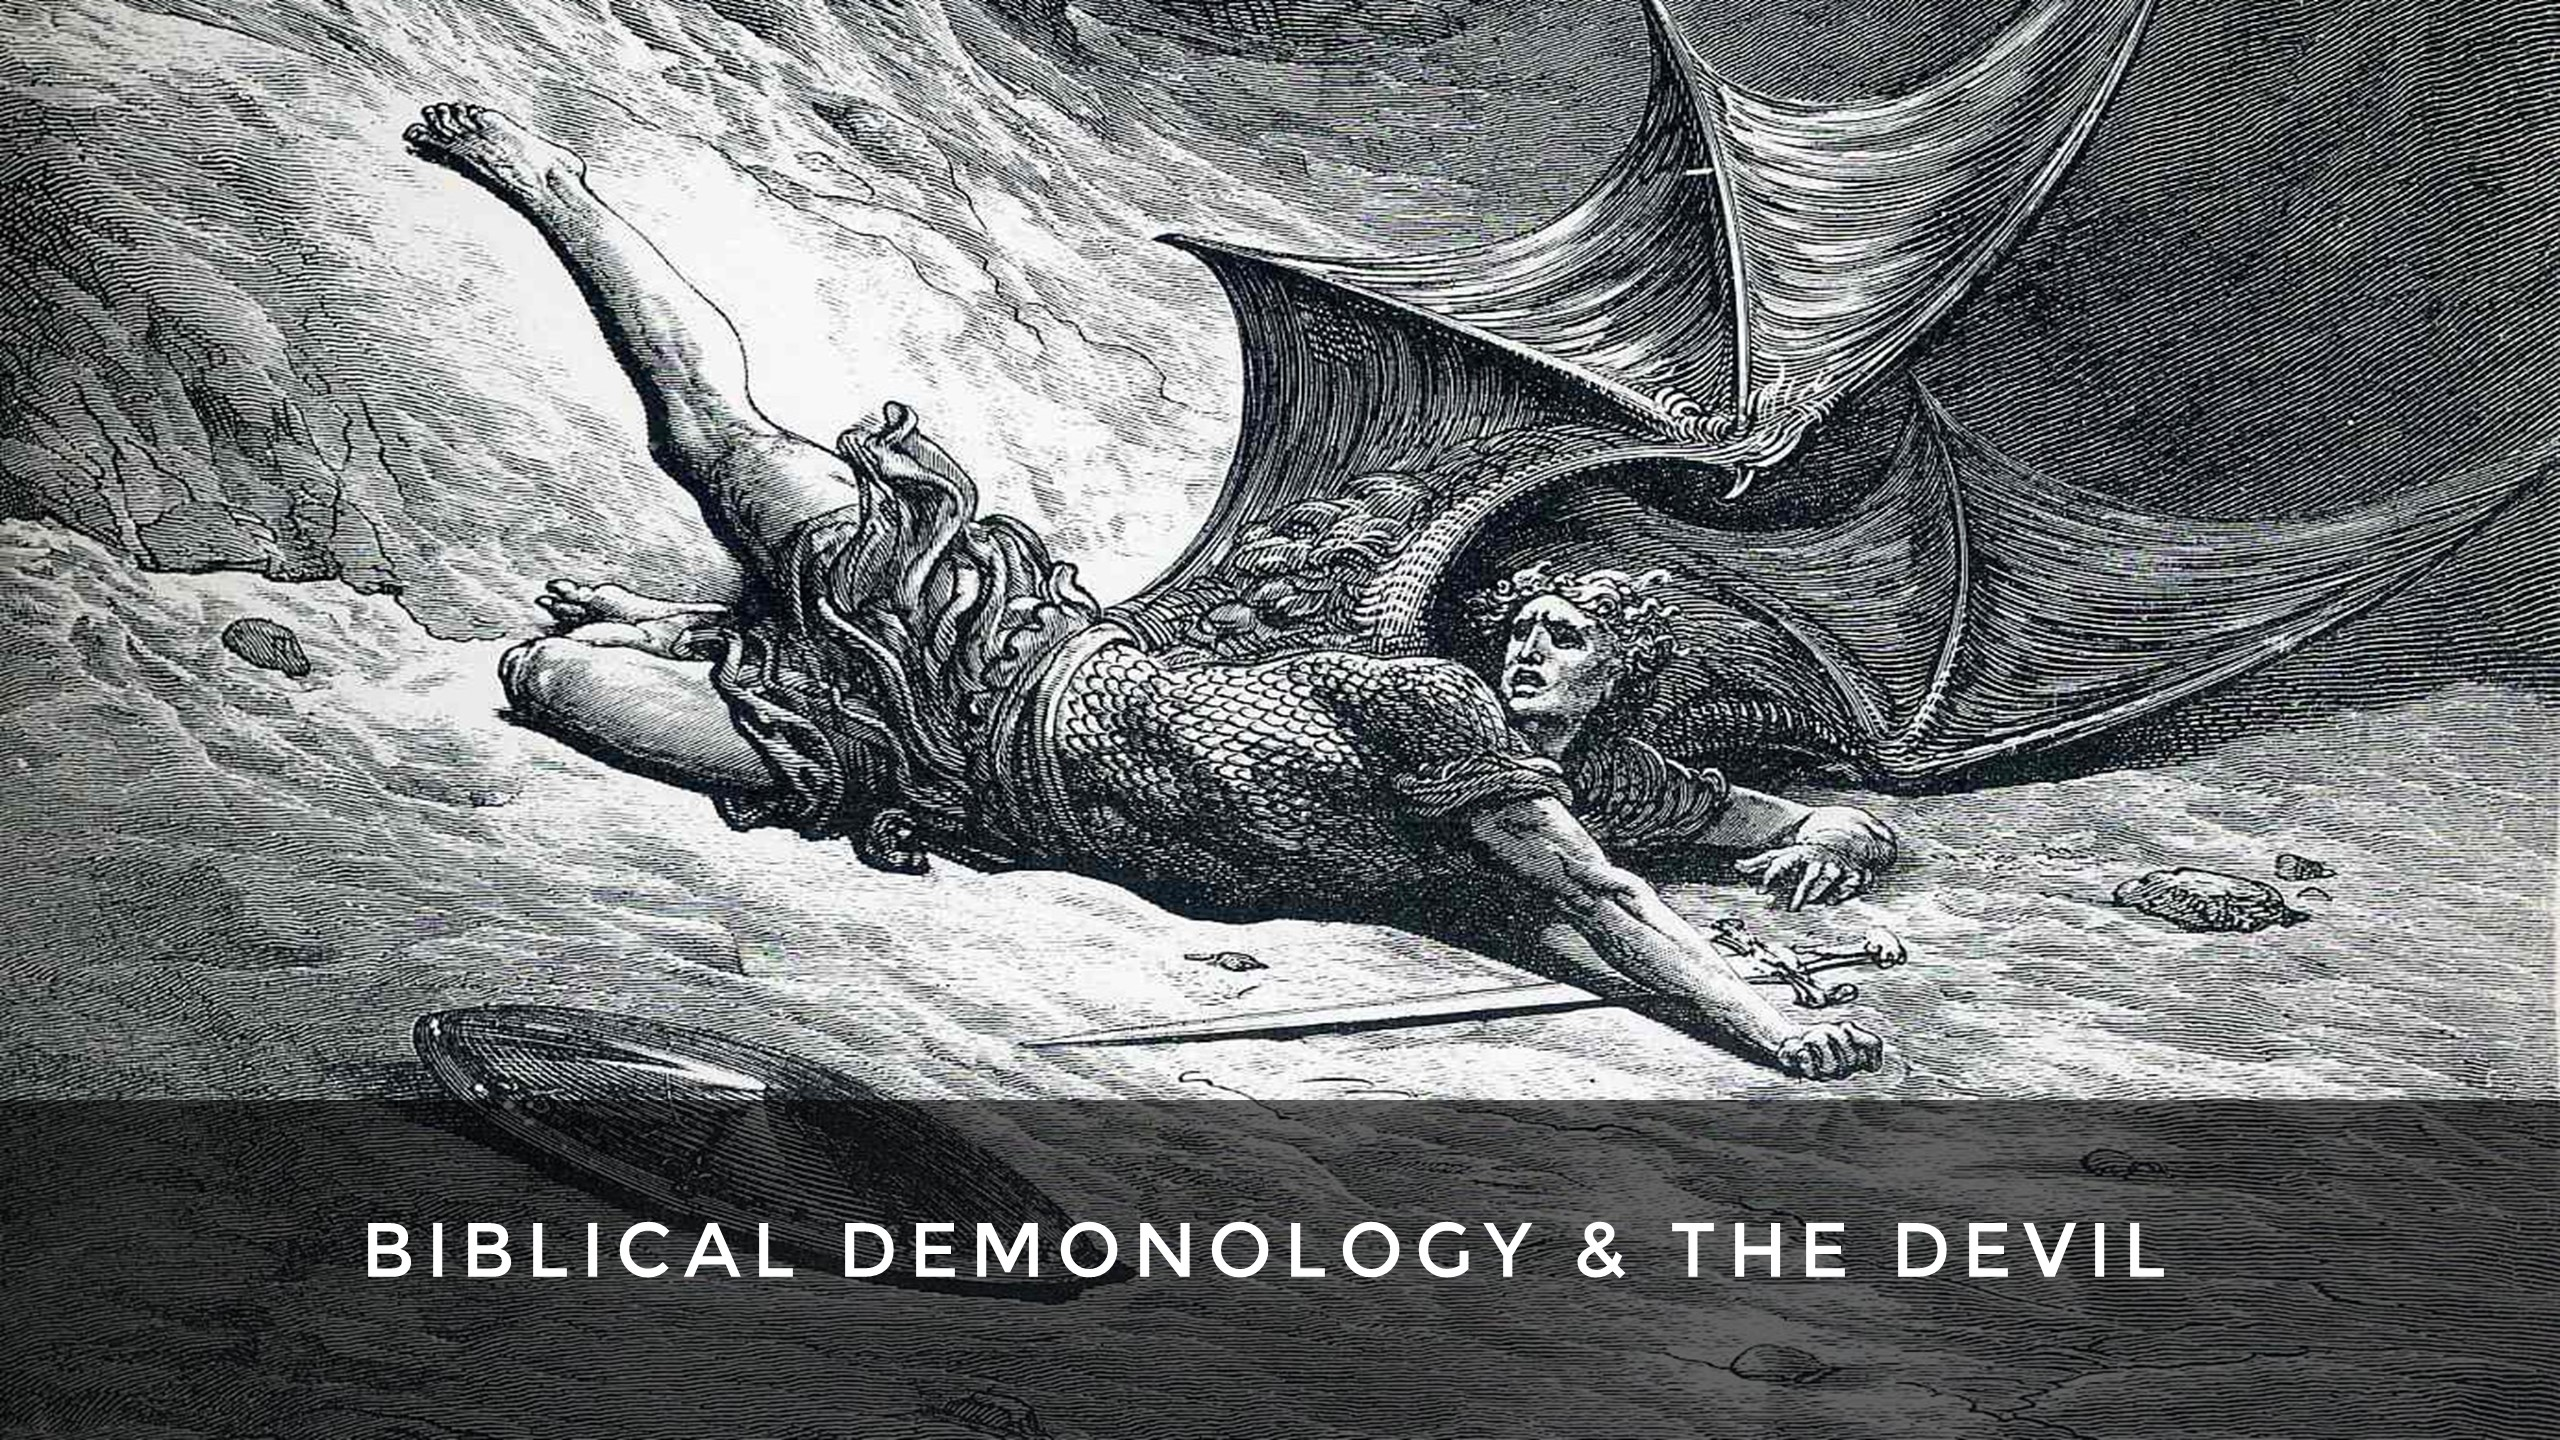 Brief History of Biblical Demonology & the Devil